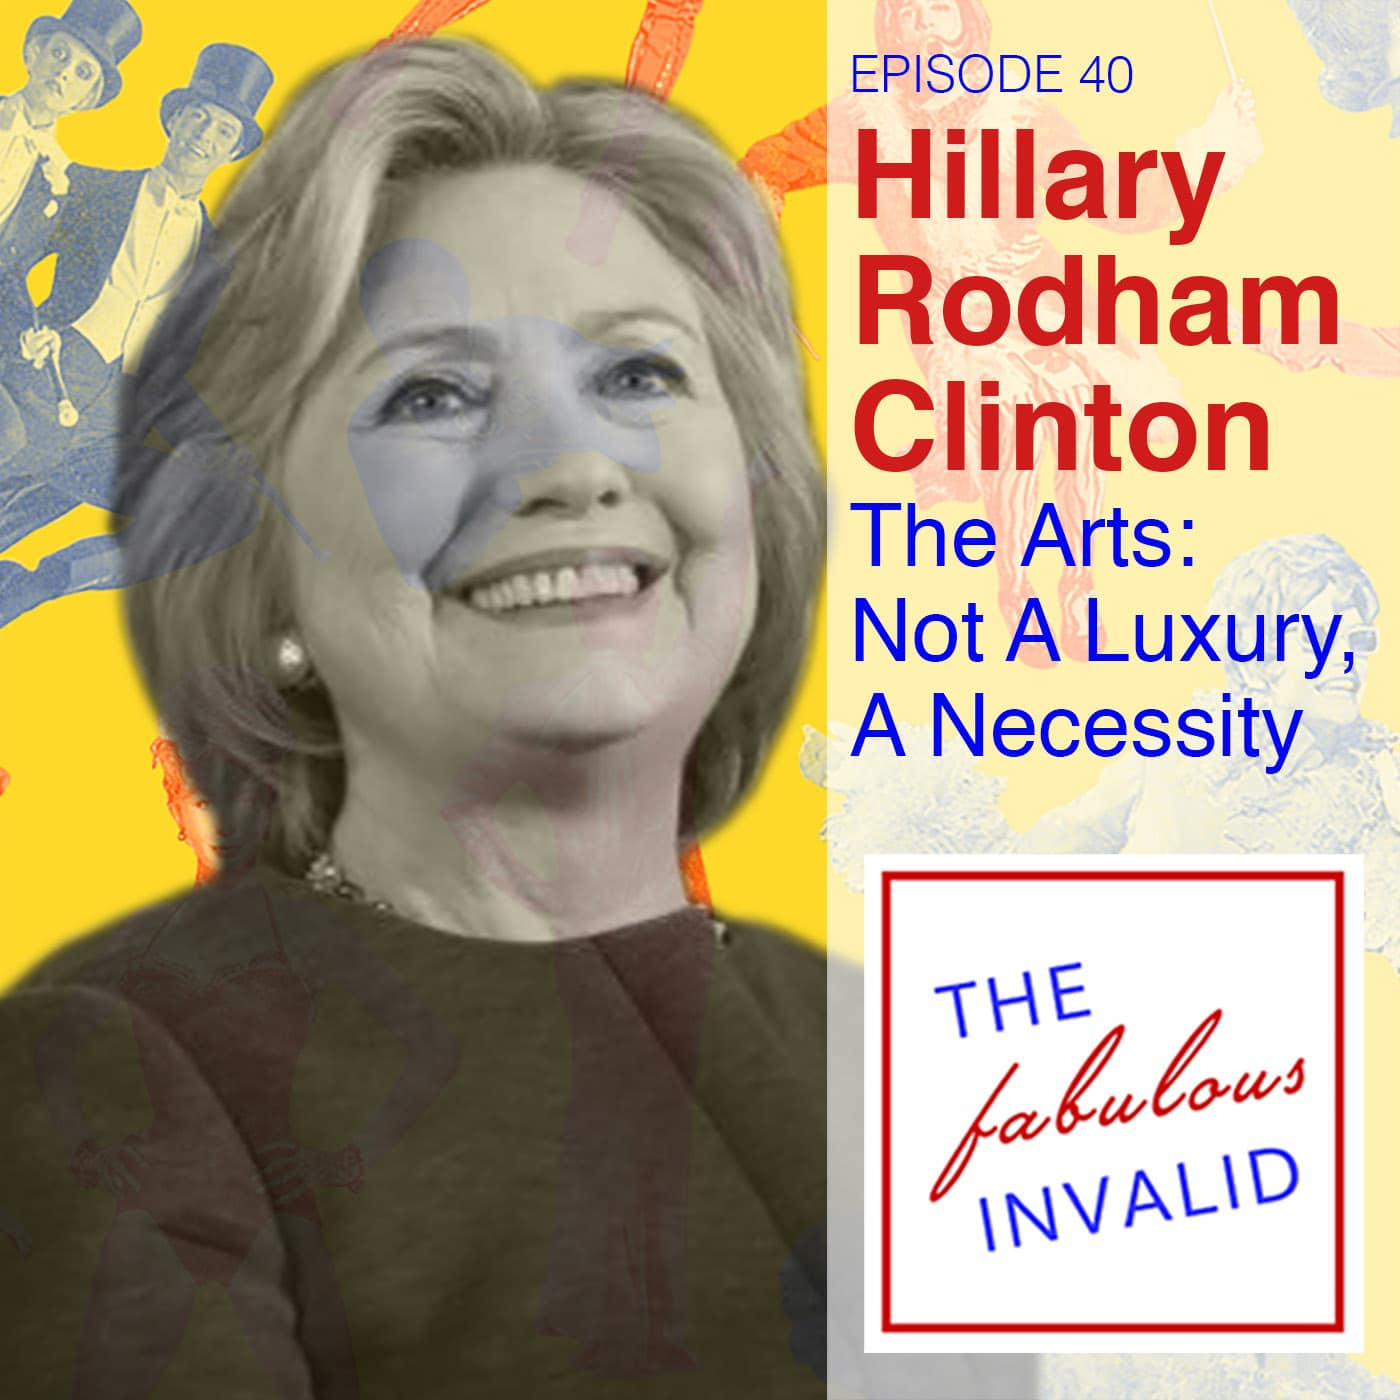 The Fabulous Invalid Ep 40 Hillary Rodham Clinton